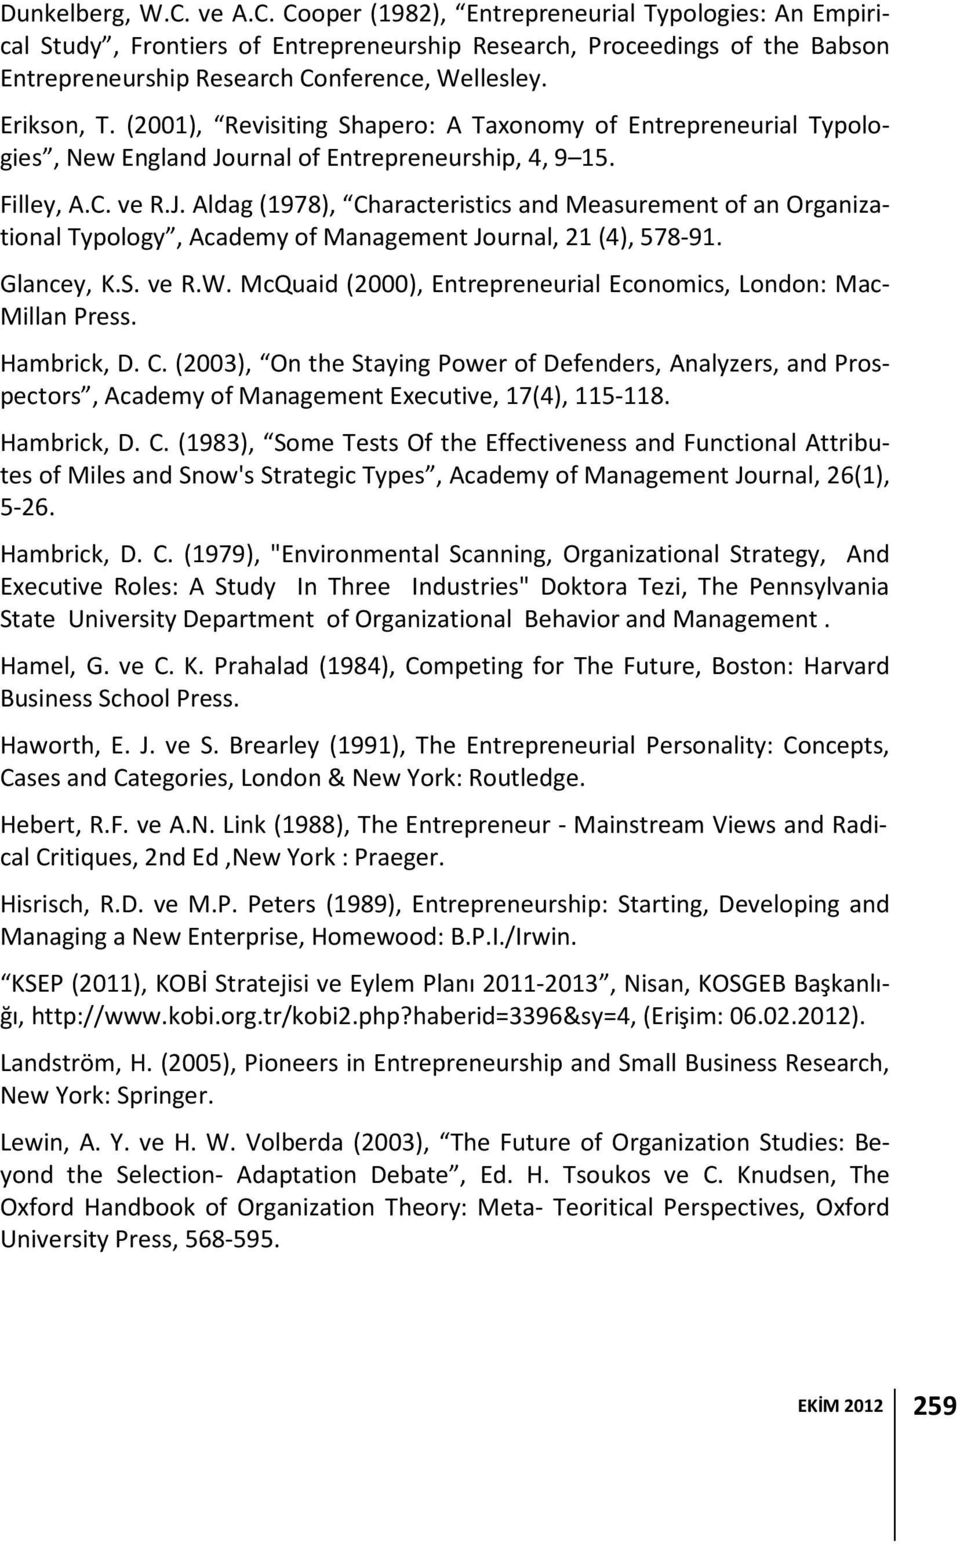 urnal of Entrepreneurship, 4, 9 15. Filley, A.C. ve R.J. Aldag (1978), Characteristics and Measurement of an Organizational Typology, Academy of Management Journal, 21 (4), 578-91. Glancey, K.S. ve R.W.